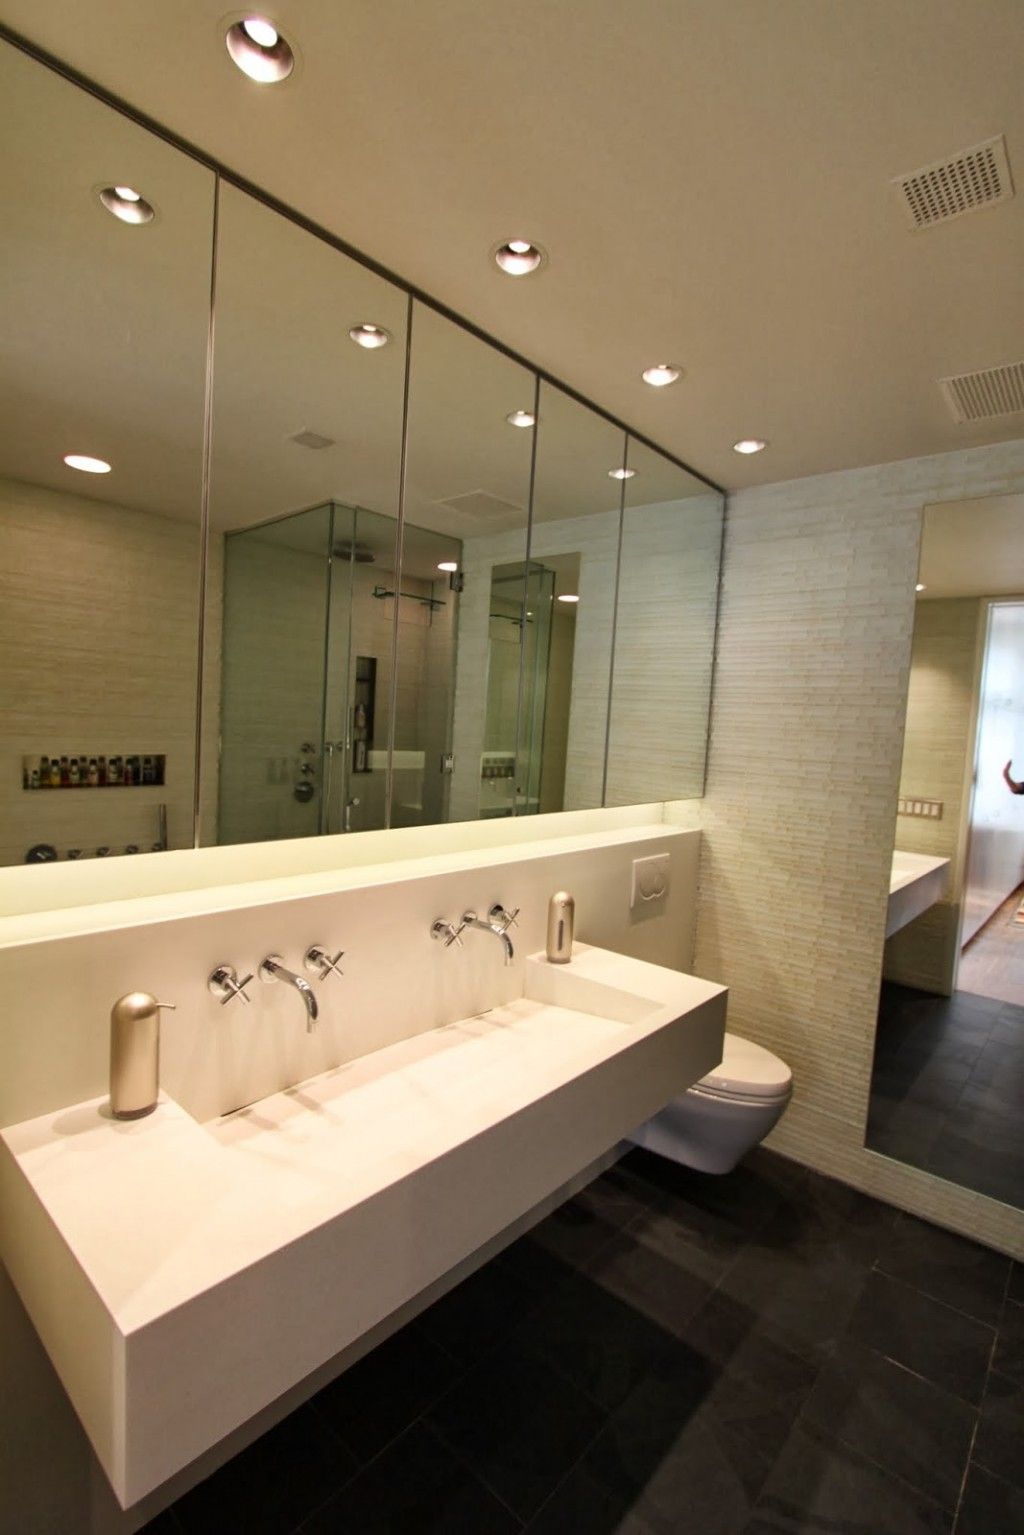 Bathroom With Large Wall Mirror Design Also Cool Recessed Lighting And Minimalist Trough Sink Idea Bathroom Recessed Lighting Restroom Design Recessed Lighting